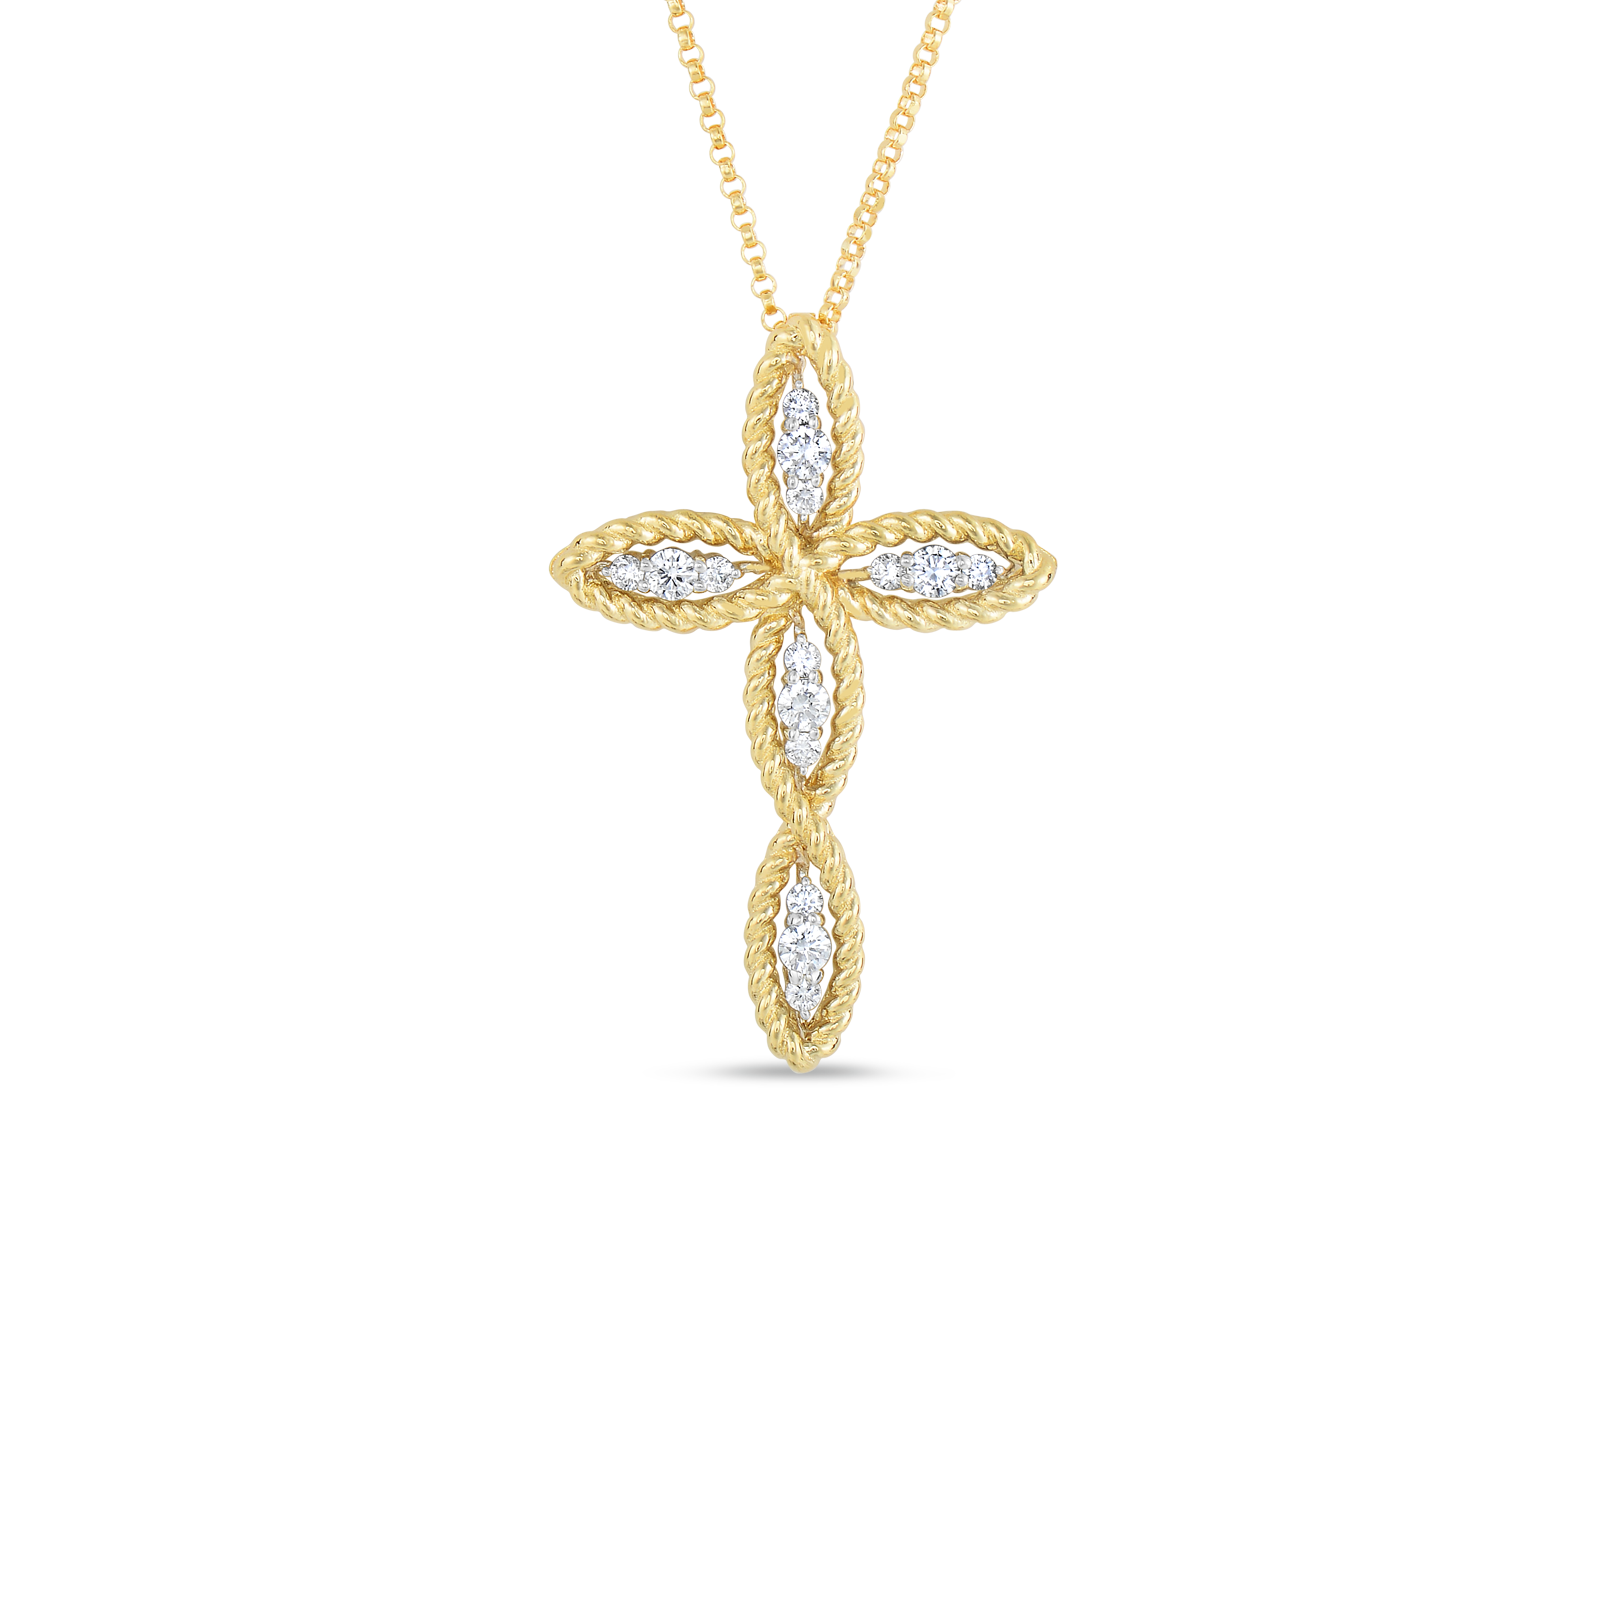 Roberto coin gold cross pendant with diamonds santa fe jewelry aloadofball Image collections